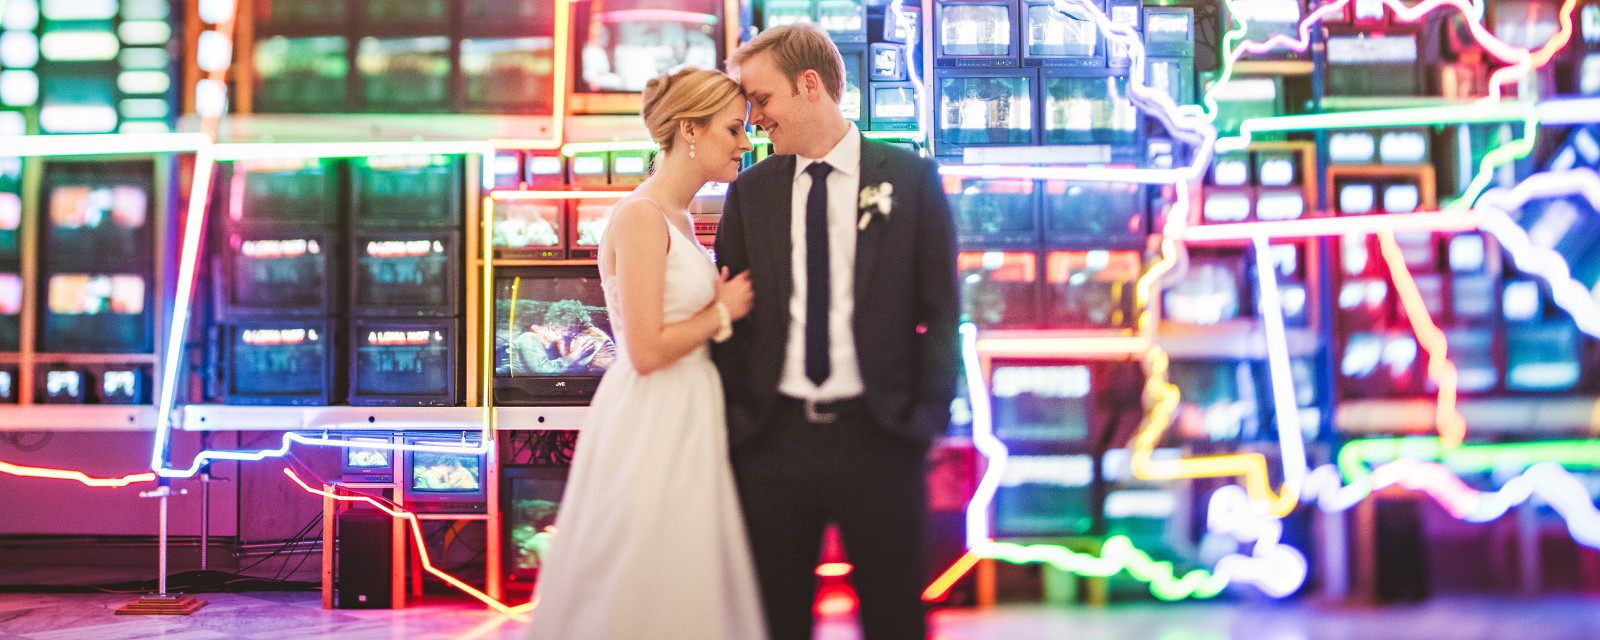 longview gallery wedding in dc // brian and kate